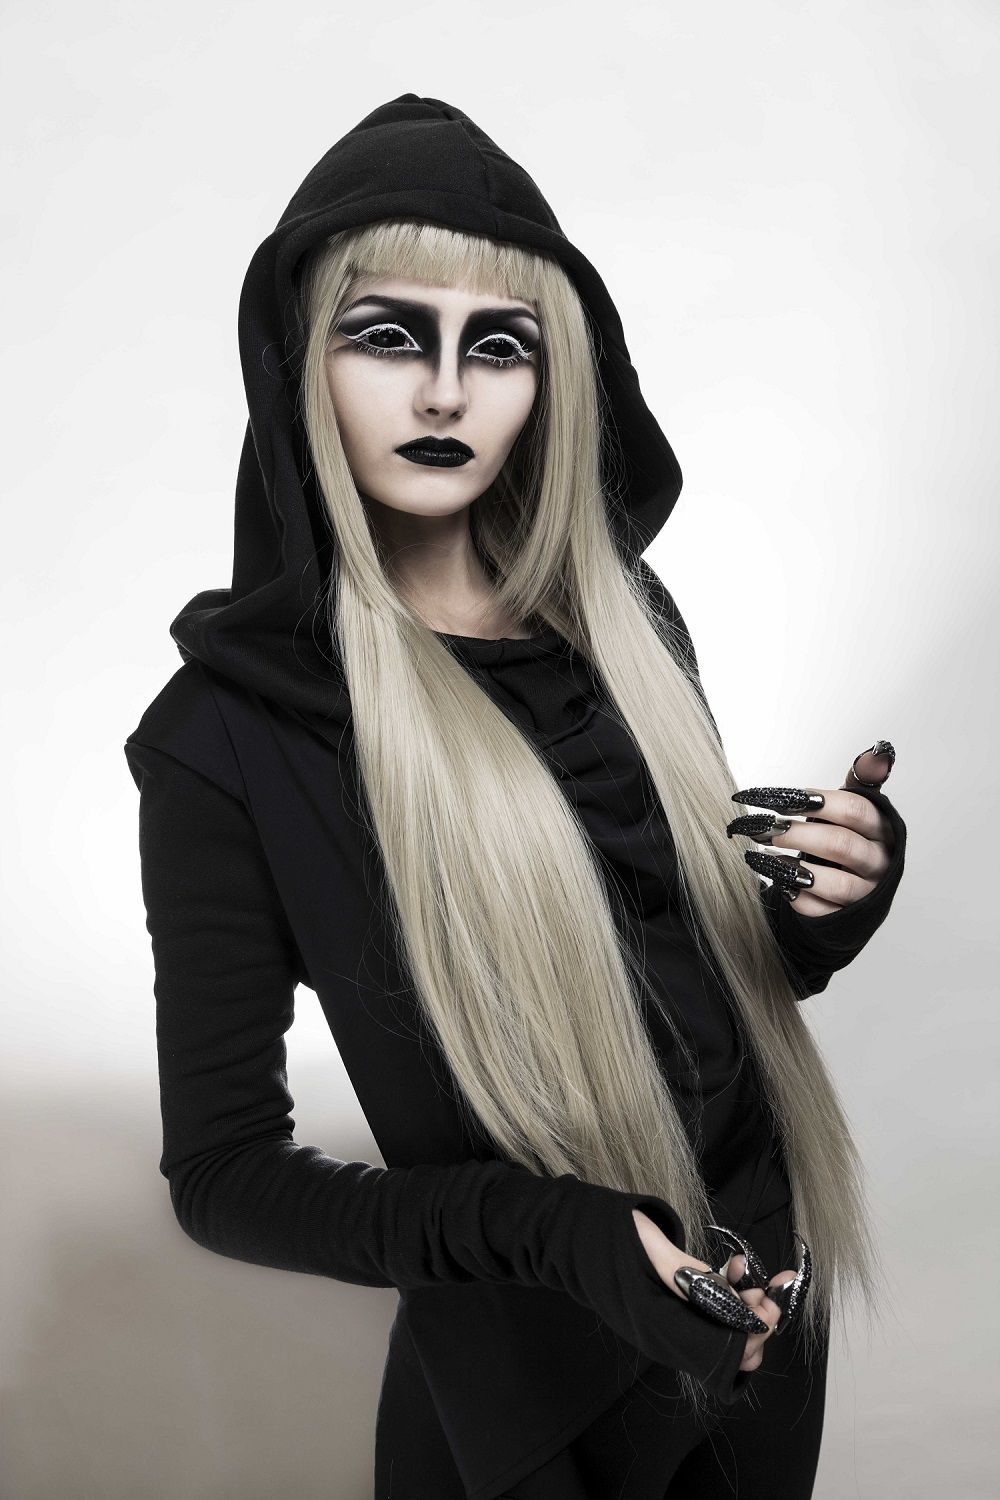 Pin by ScleraXL on Black Sclera Contacts Angel halloween